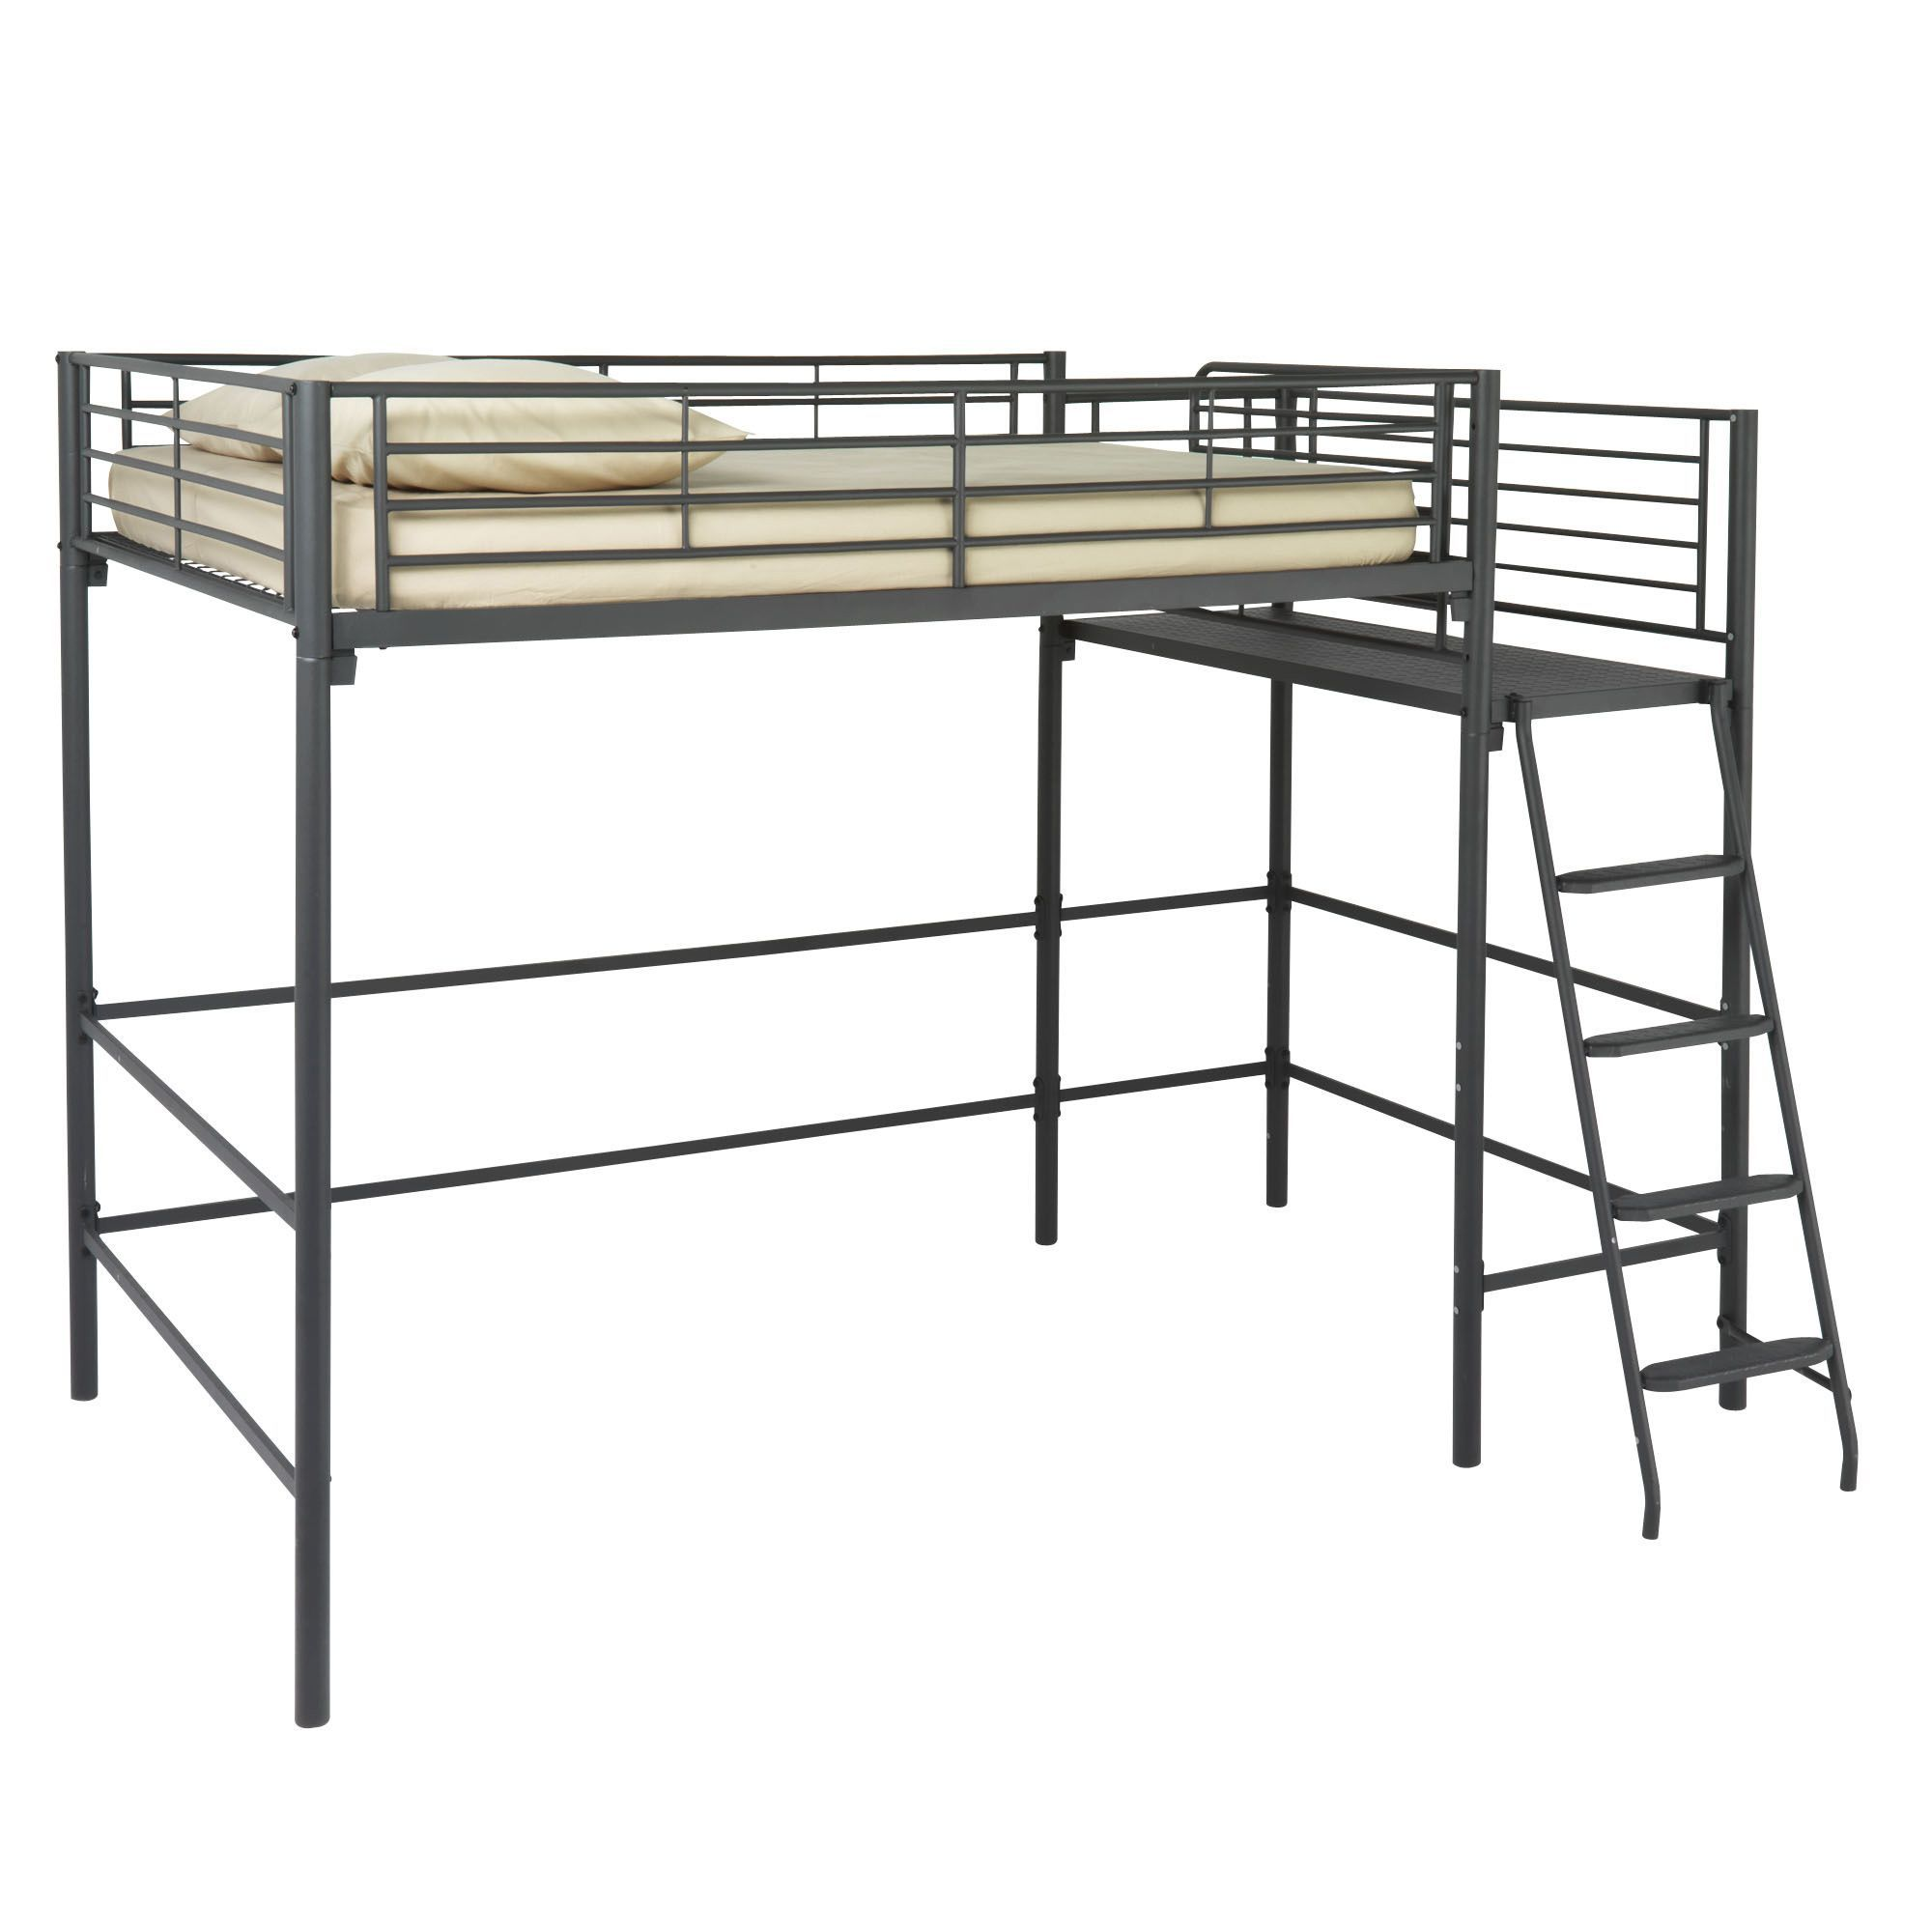 lit mezzanine avec plate forme 140x200 cm alexi new les lits alinea chambre sous sol. Black Bedroom Furniture Sets. Home Design Ideas